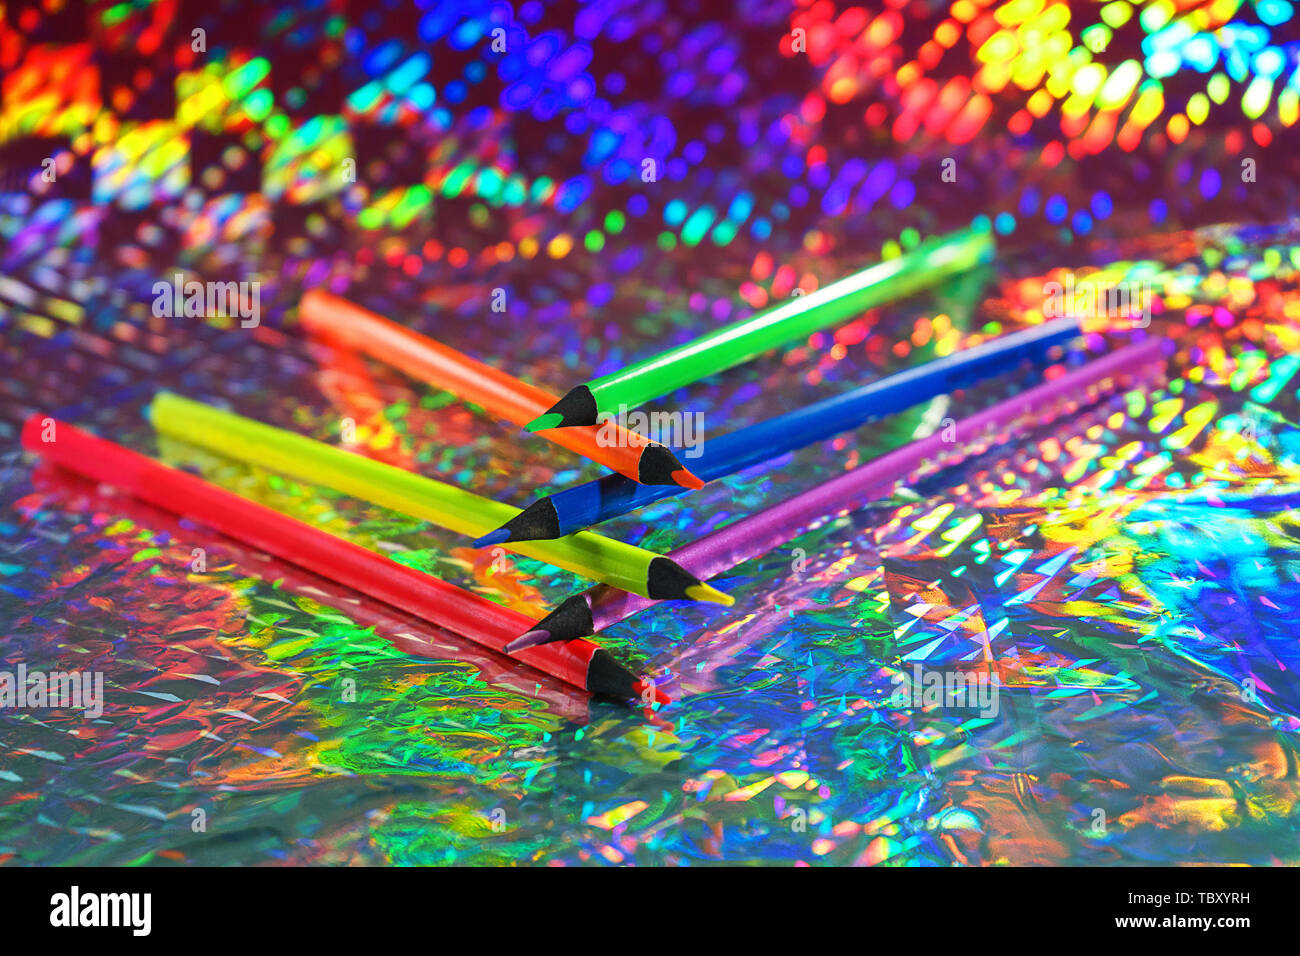 Back to school background with colorful neon color pencils on holographic foil backdrop. - Stock Image